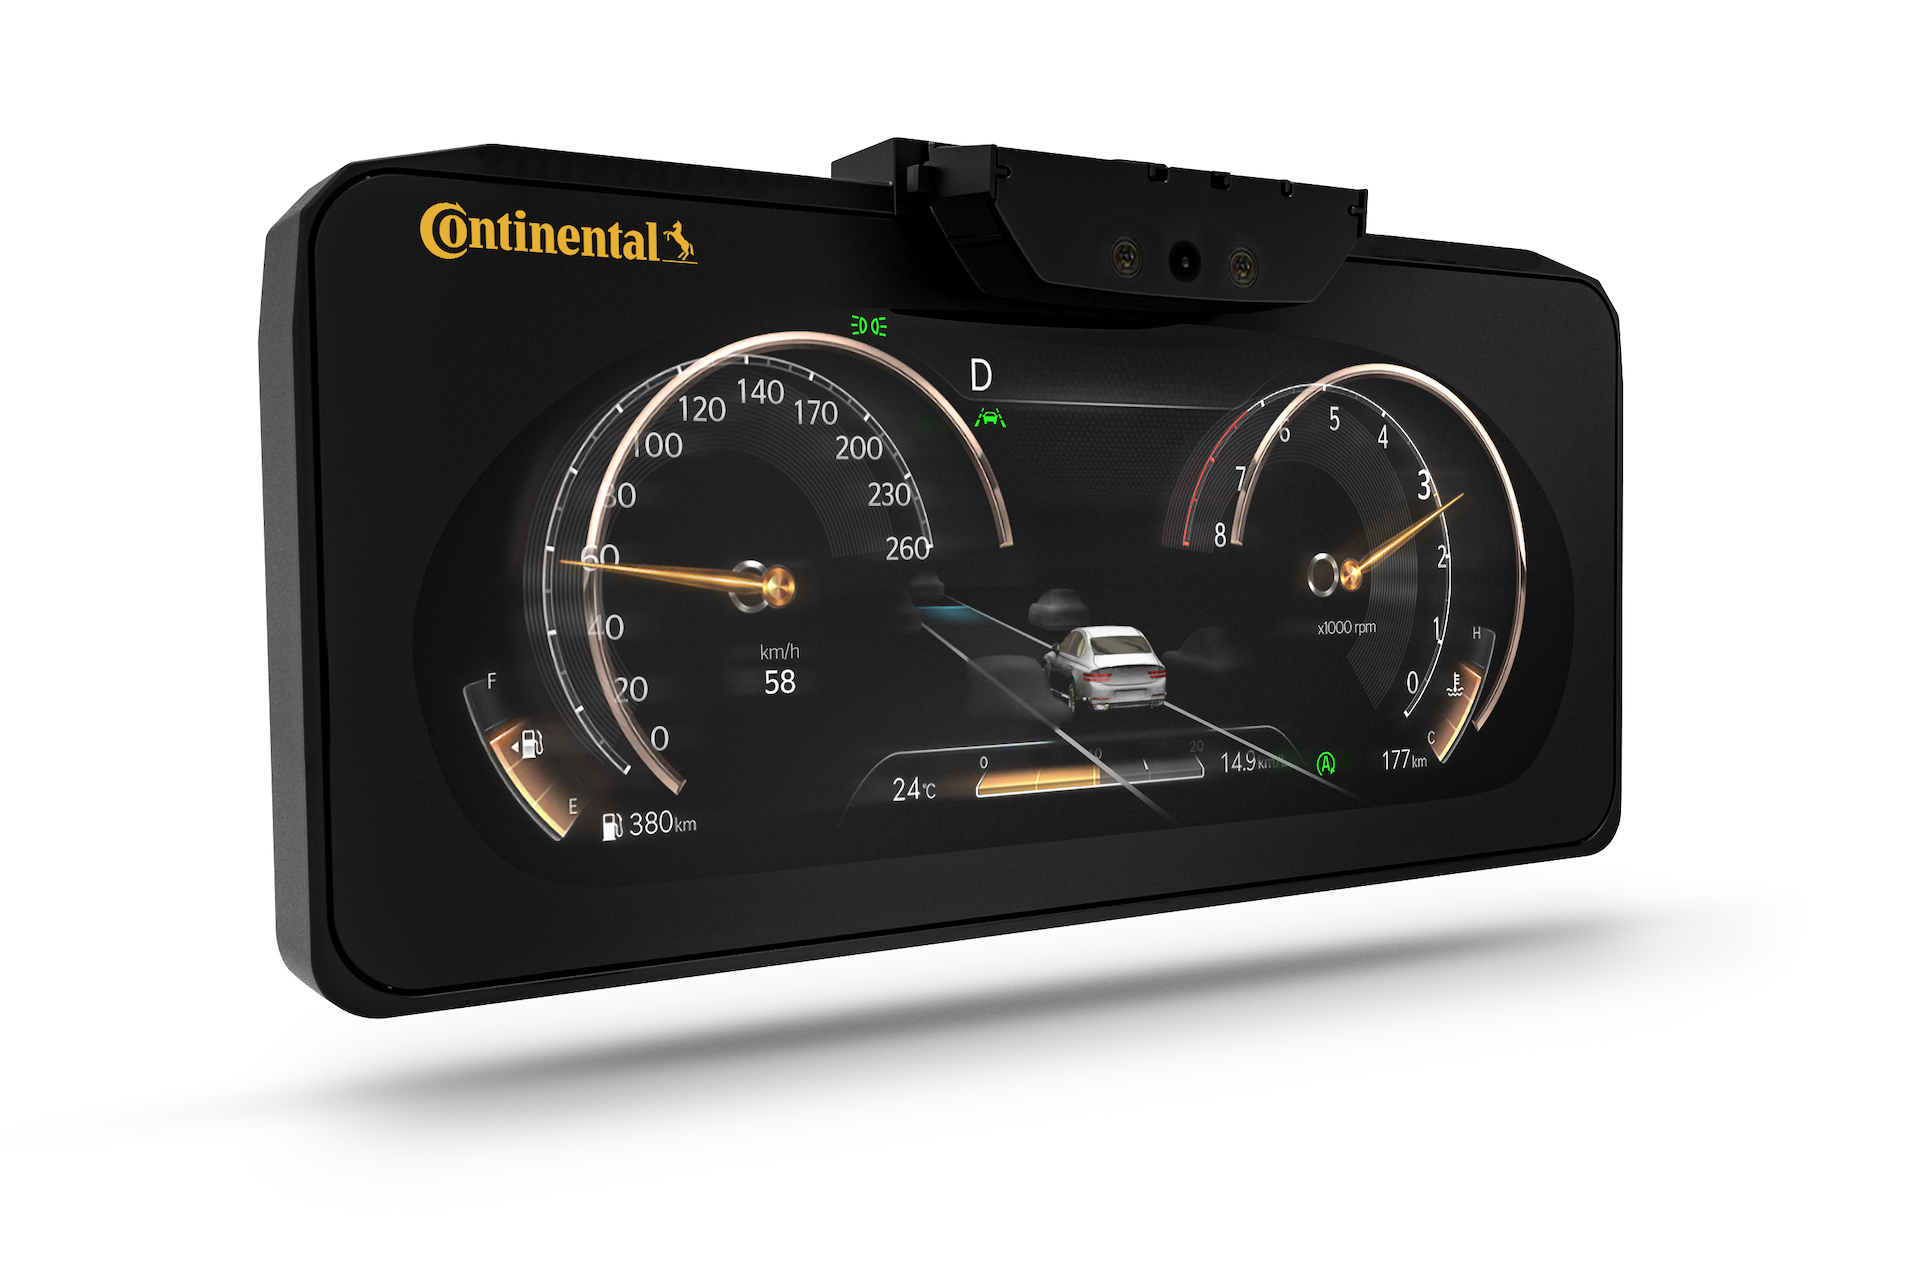 Continental 3D display powered by Kanzi